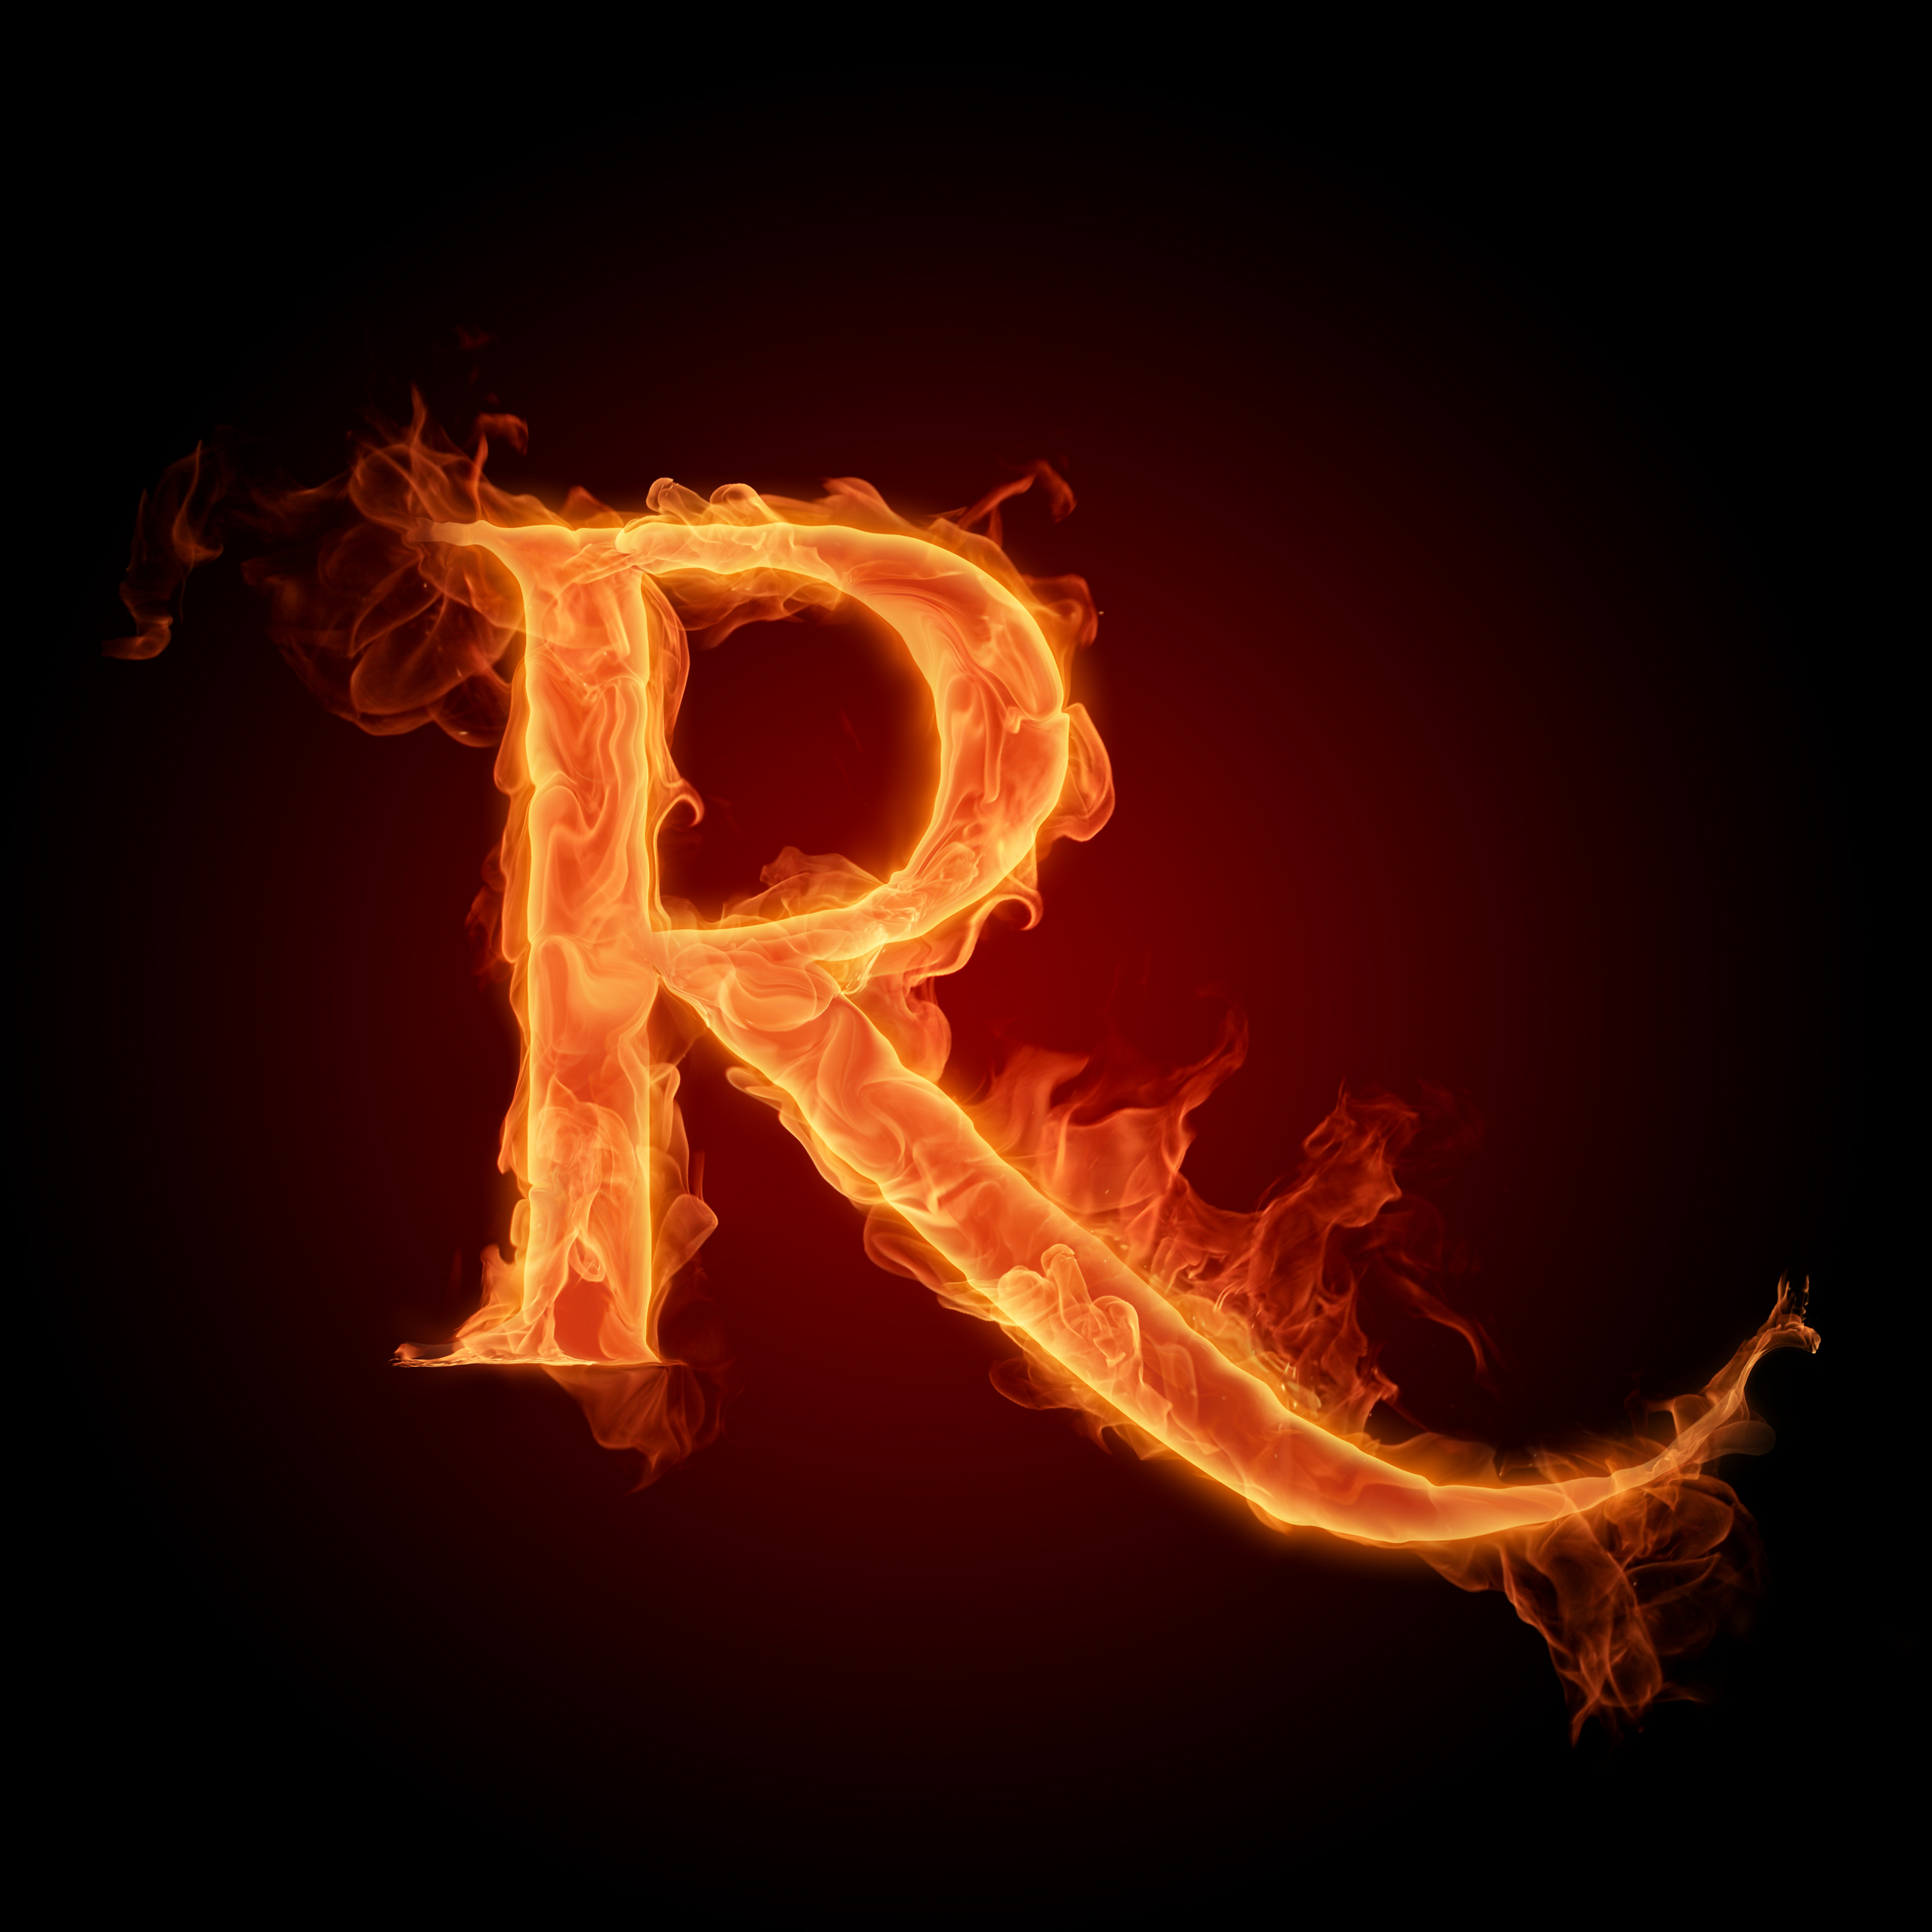 The Letter R images The letter R HD wallpaper and background